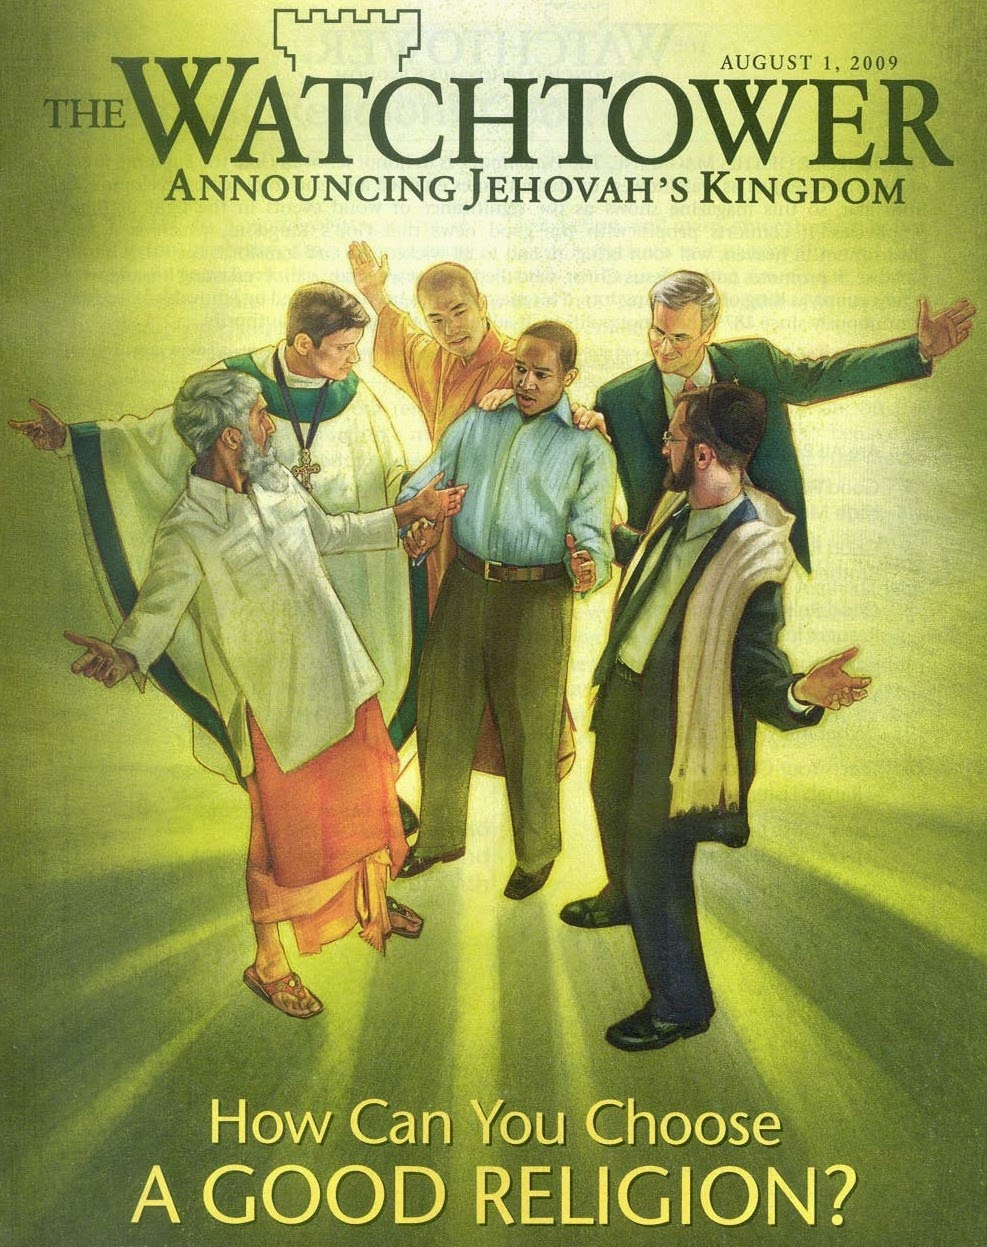 Witnessing to Jehovah's Witness: The Watchtower organization